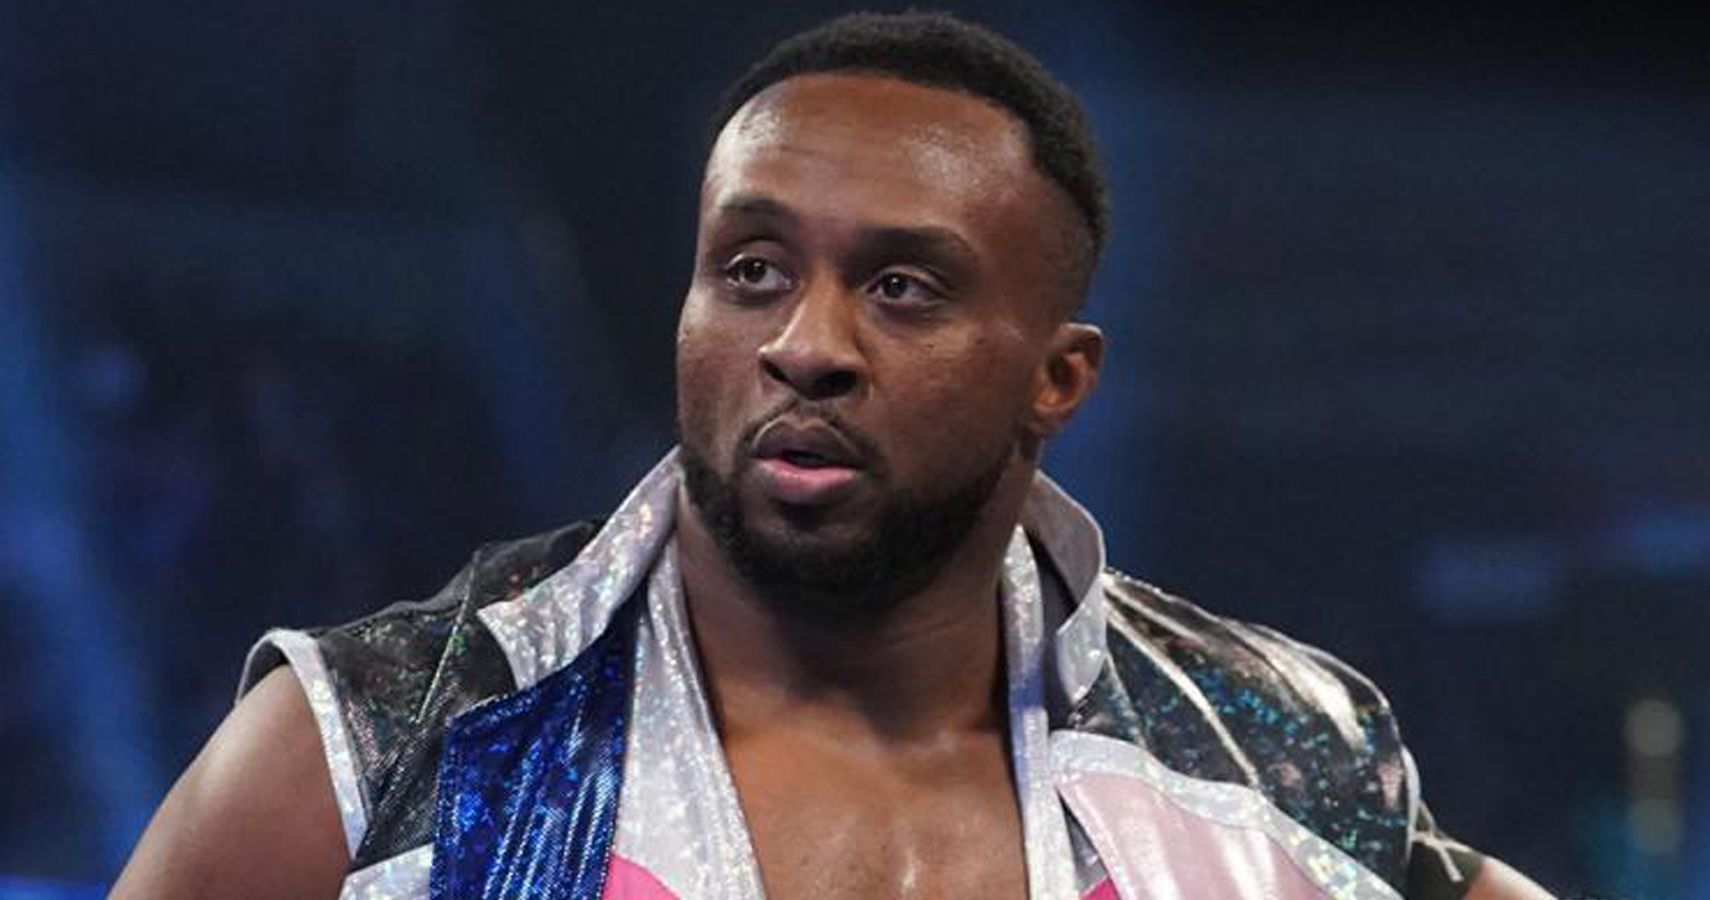 New Day: 10 Facts Fans Should Know About Big E | TheSportster